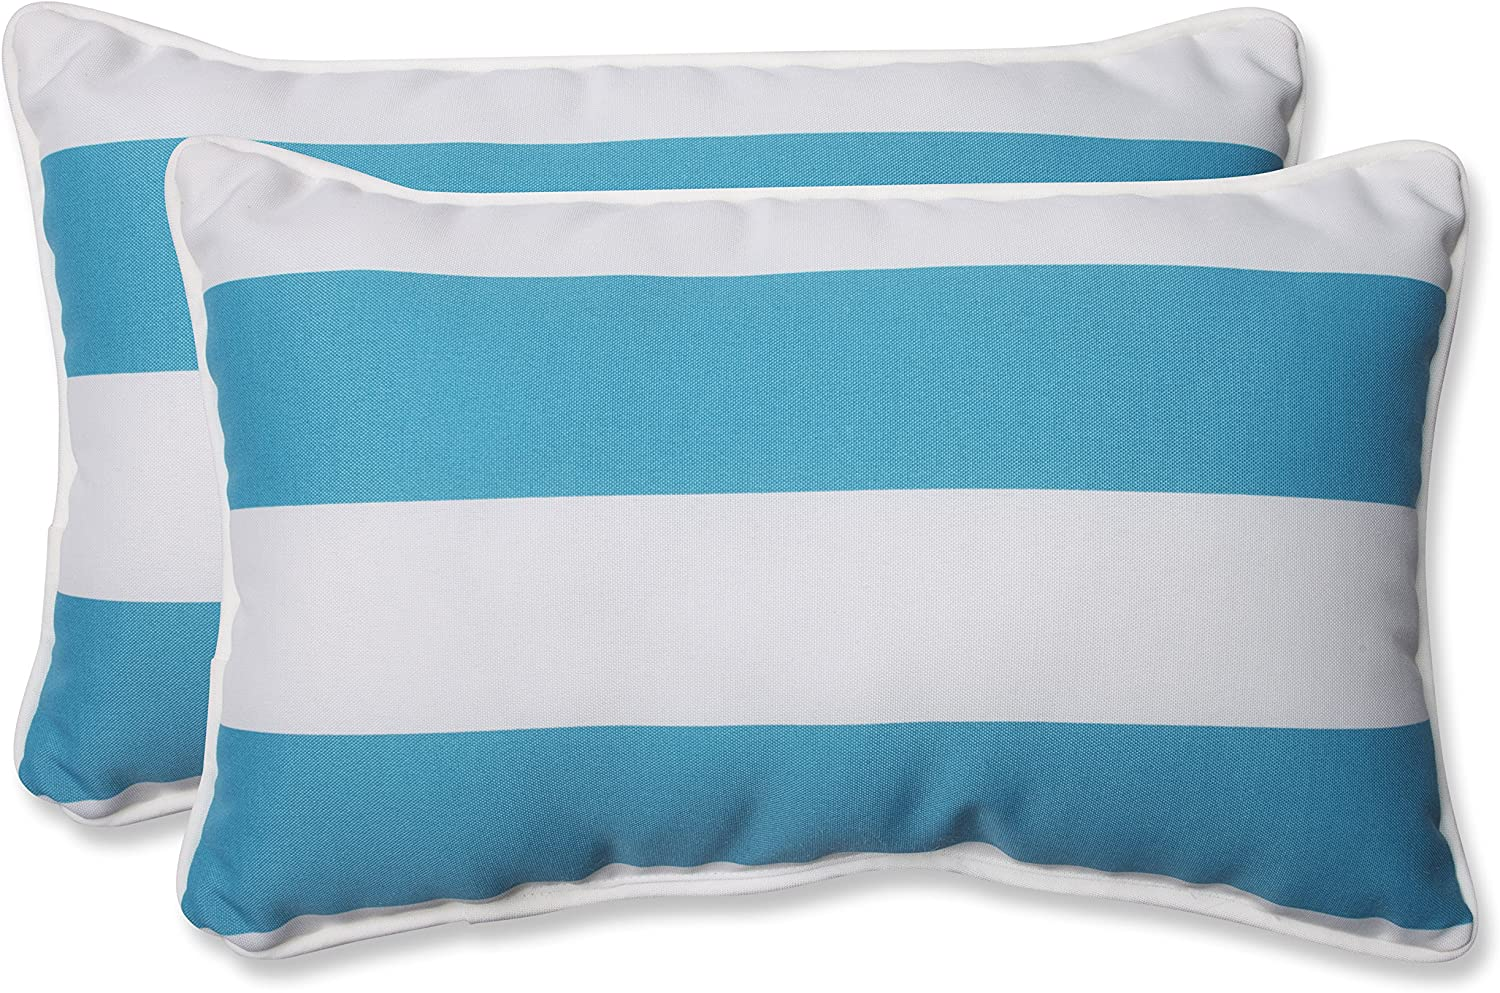 Pillow Perfect Outdoor Indoor Cabana Stripe Lumbar Pillows 11 5 X 18 5 Turquoise 2 Pack Home Kitchen Amazon Com